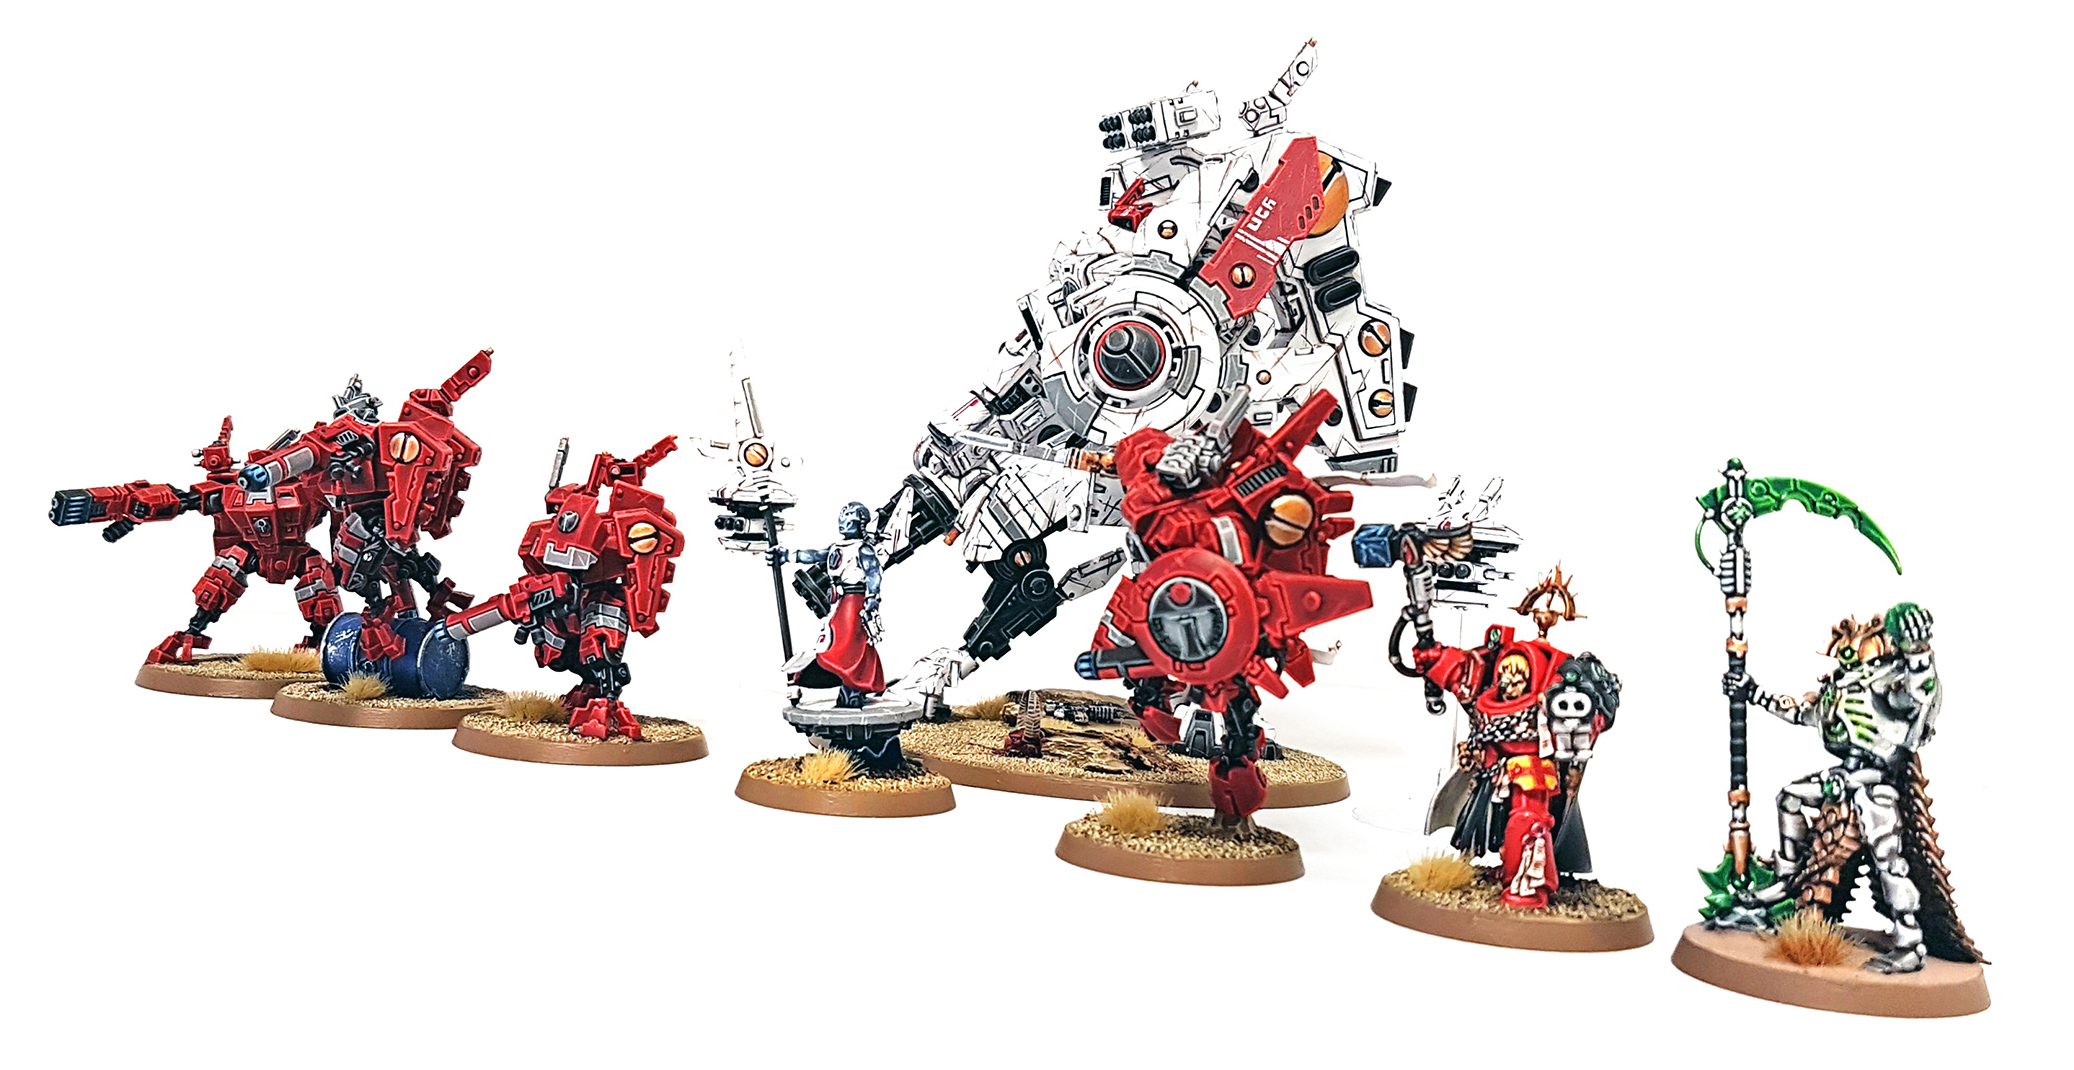 Deathhammer40k Warhammer 40,000 Commission Painted Tau Empire, Blood Angels and Necrons 21